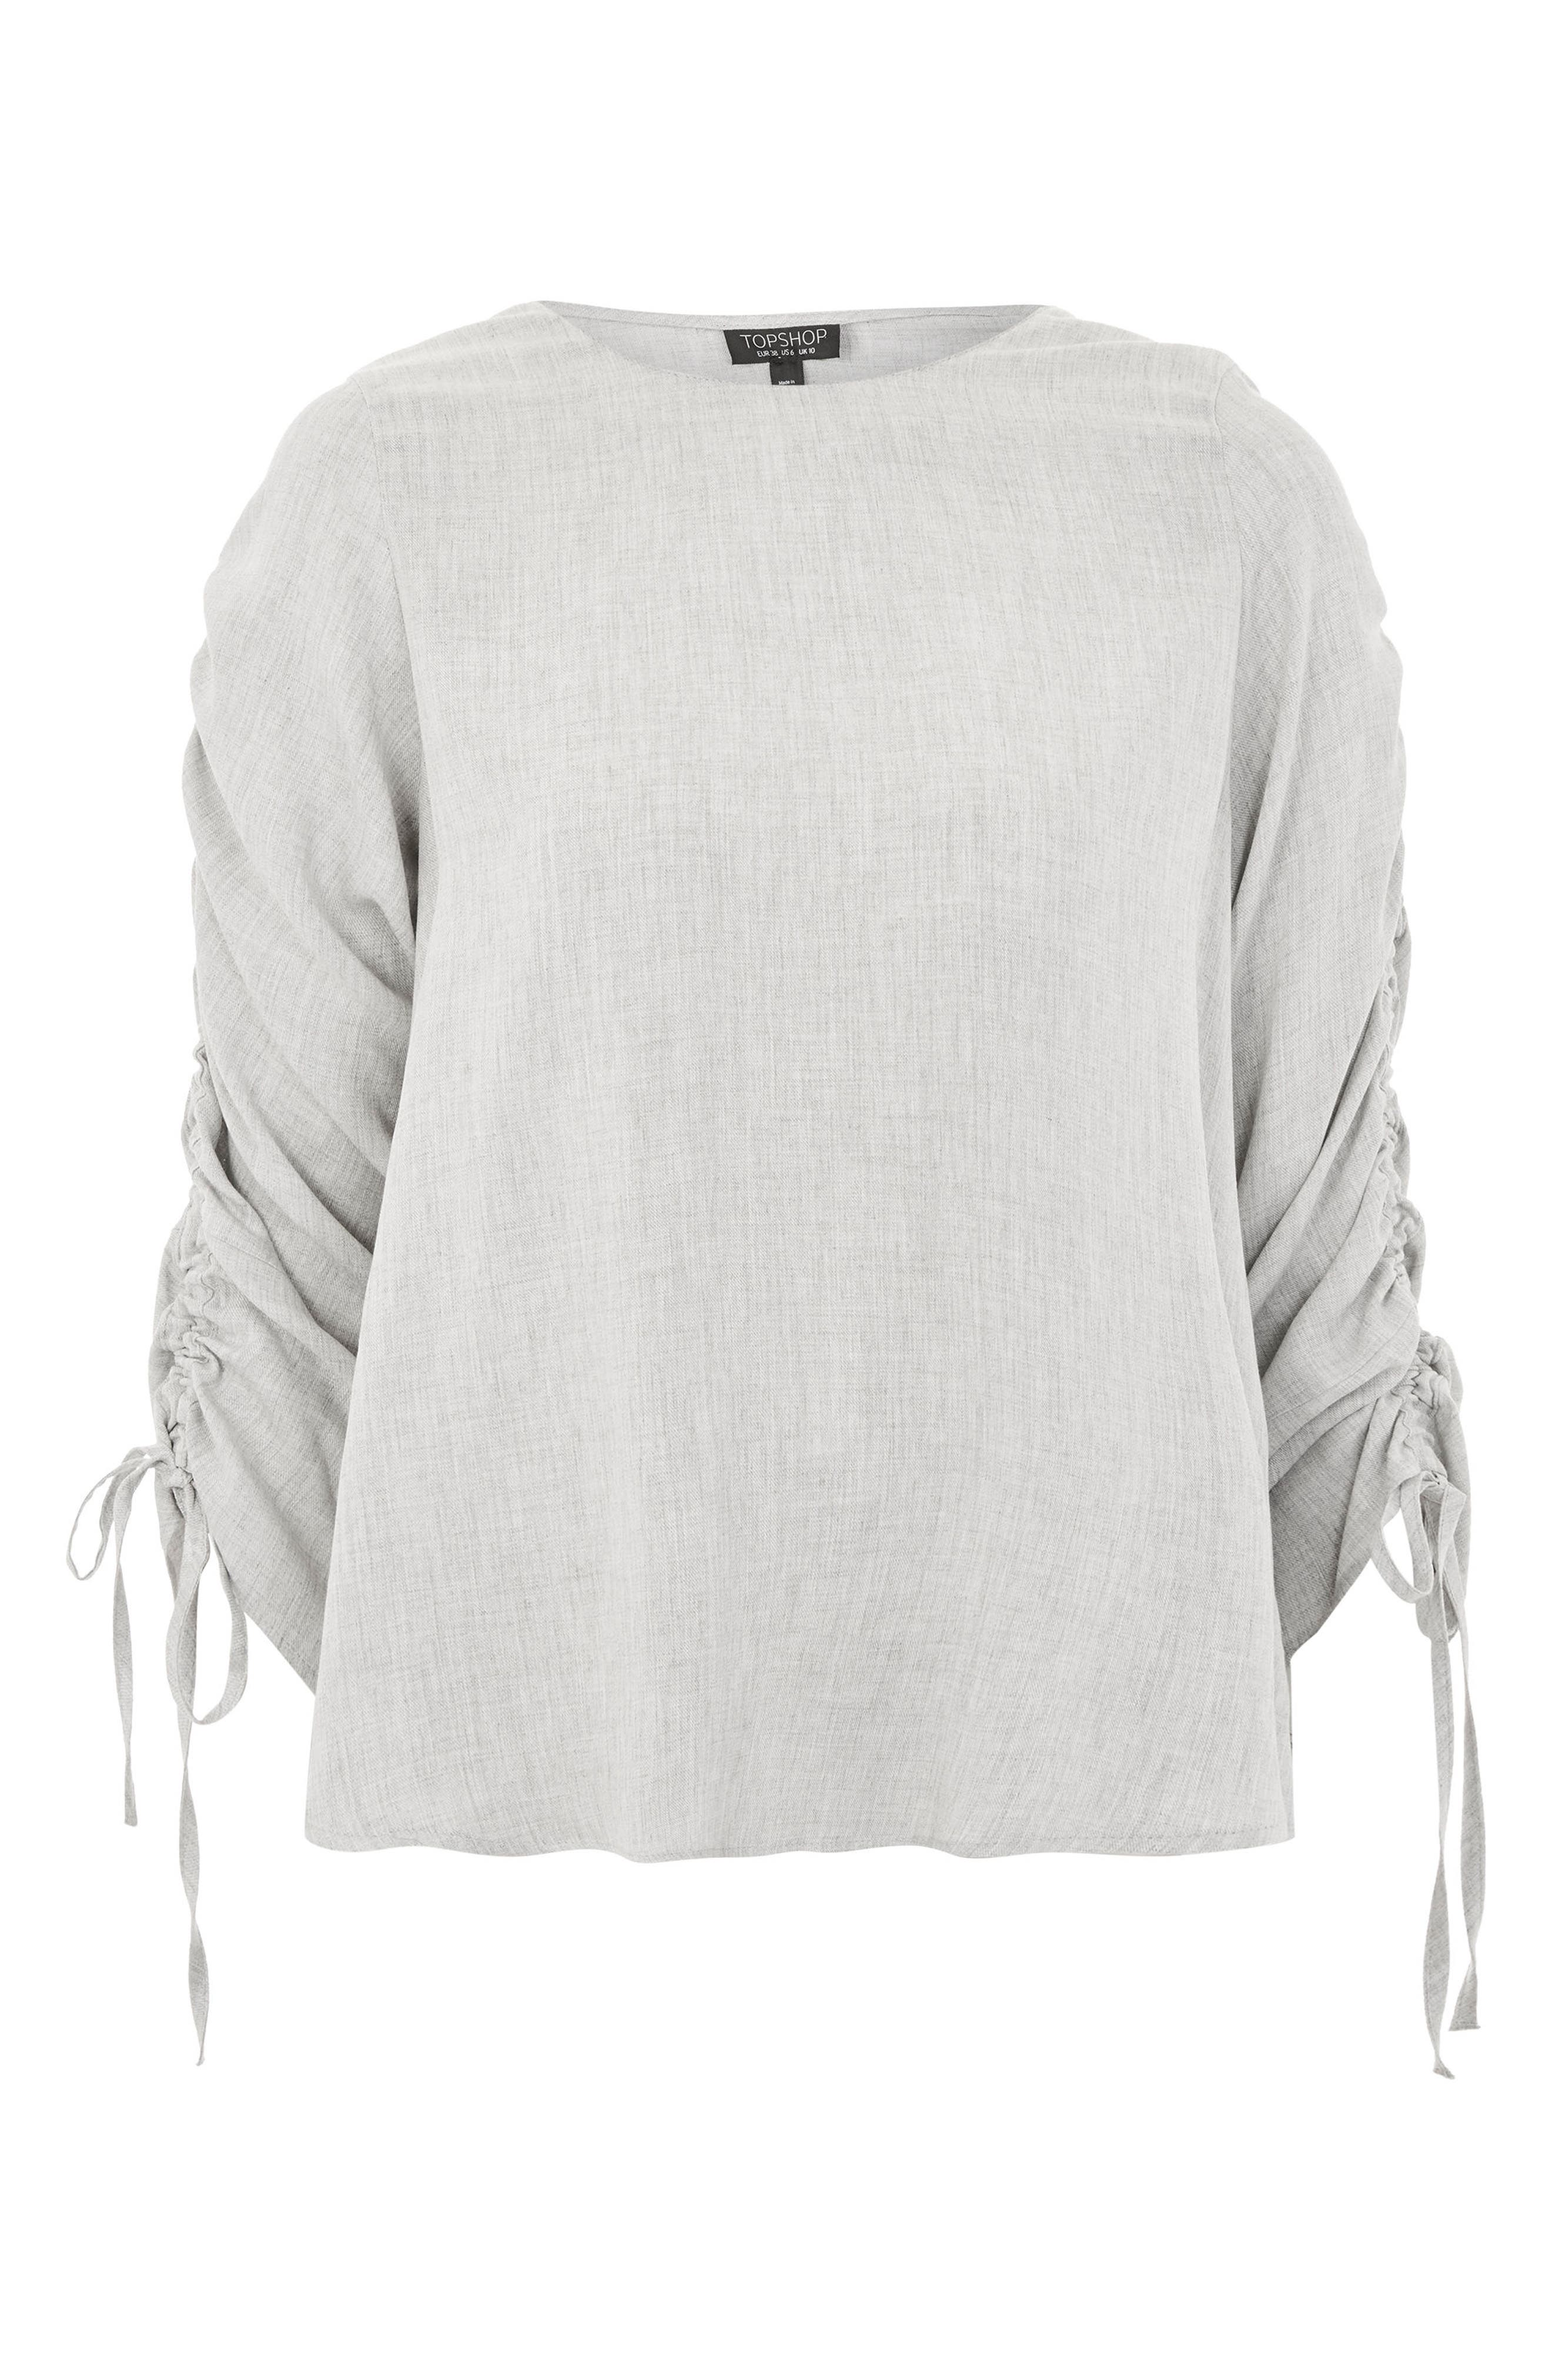 Ruched Sleeve Shirt,                             Alternate thumbnail 4, color,                             020